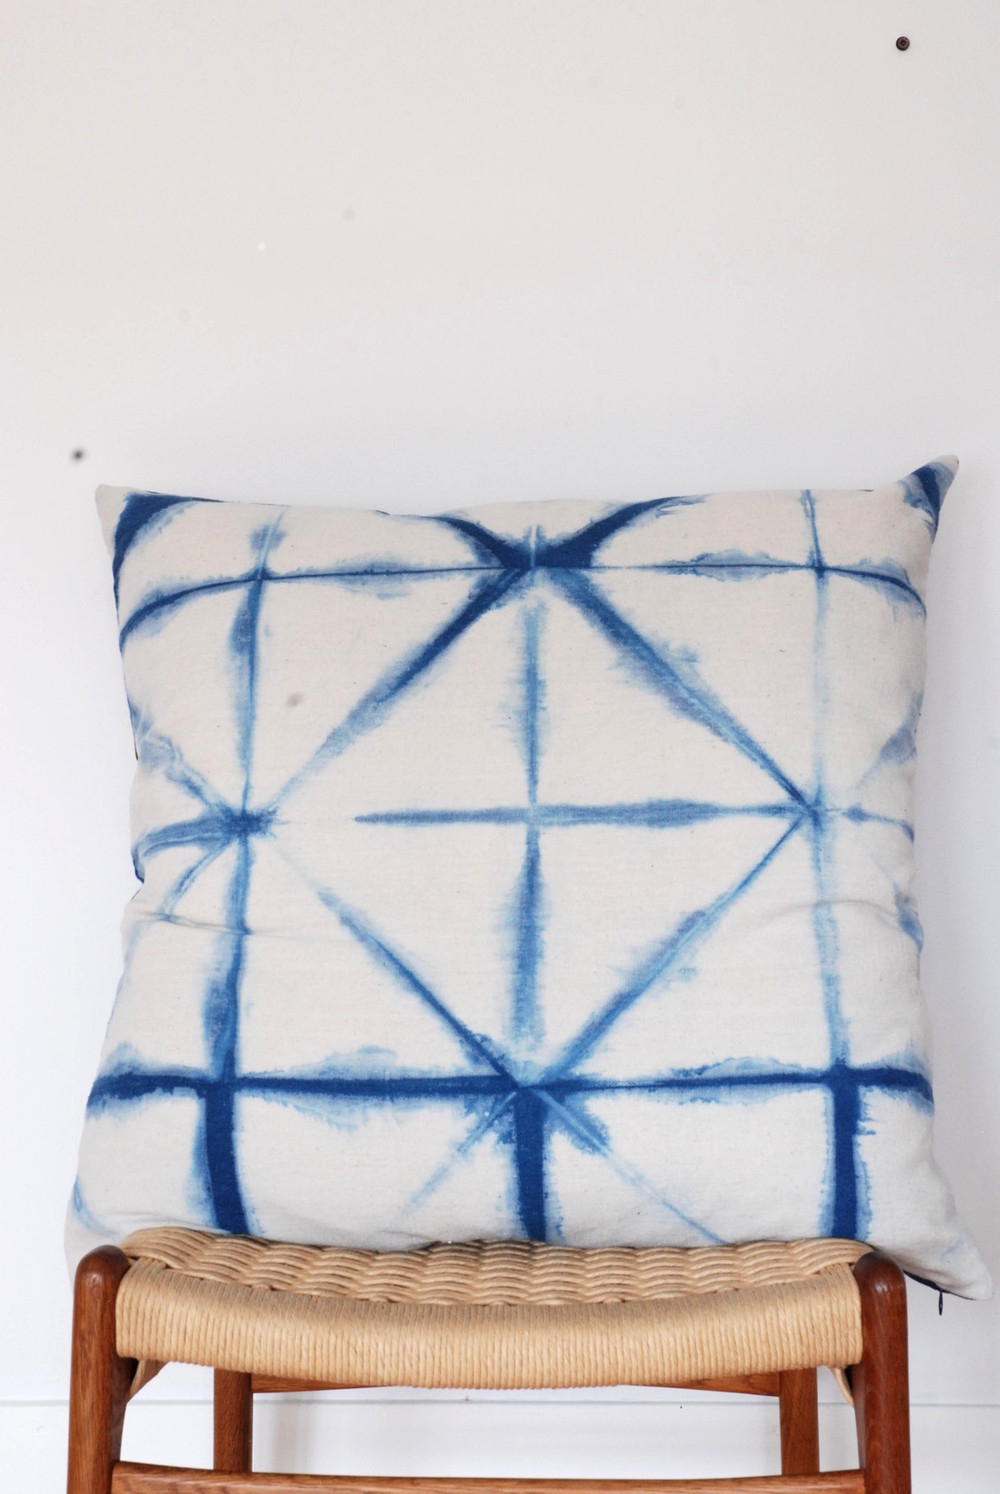 GrayGreenGoods_Shibori Indigo floor cushion cover.JPG